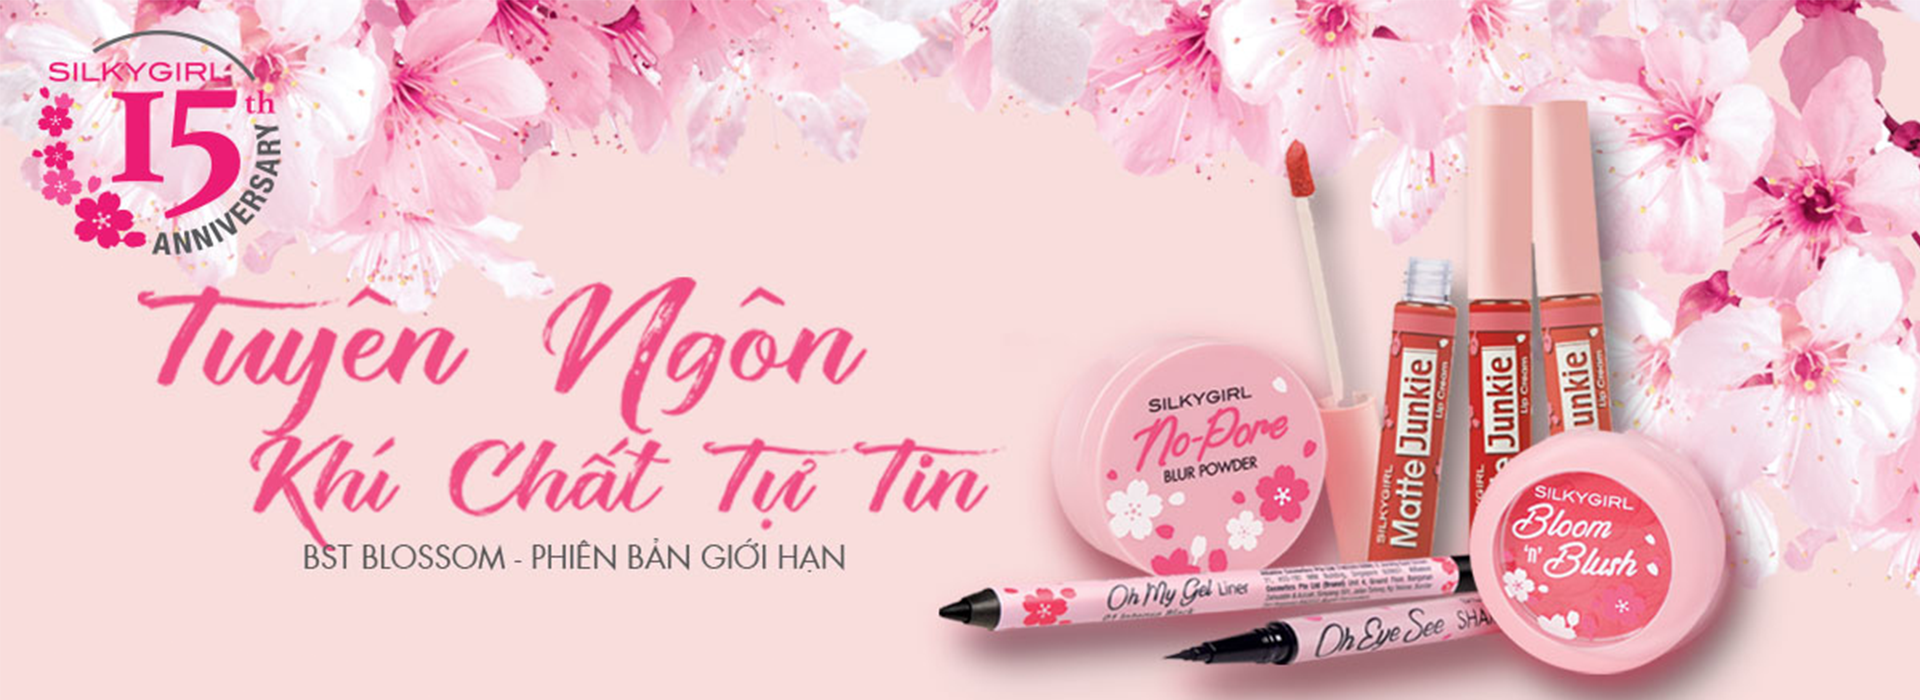 BST BLOSSOM LIMITED EDITION